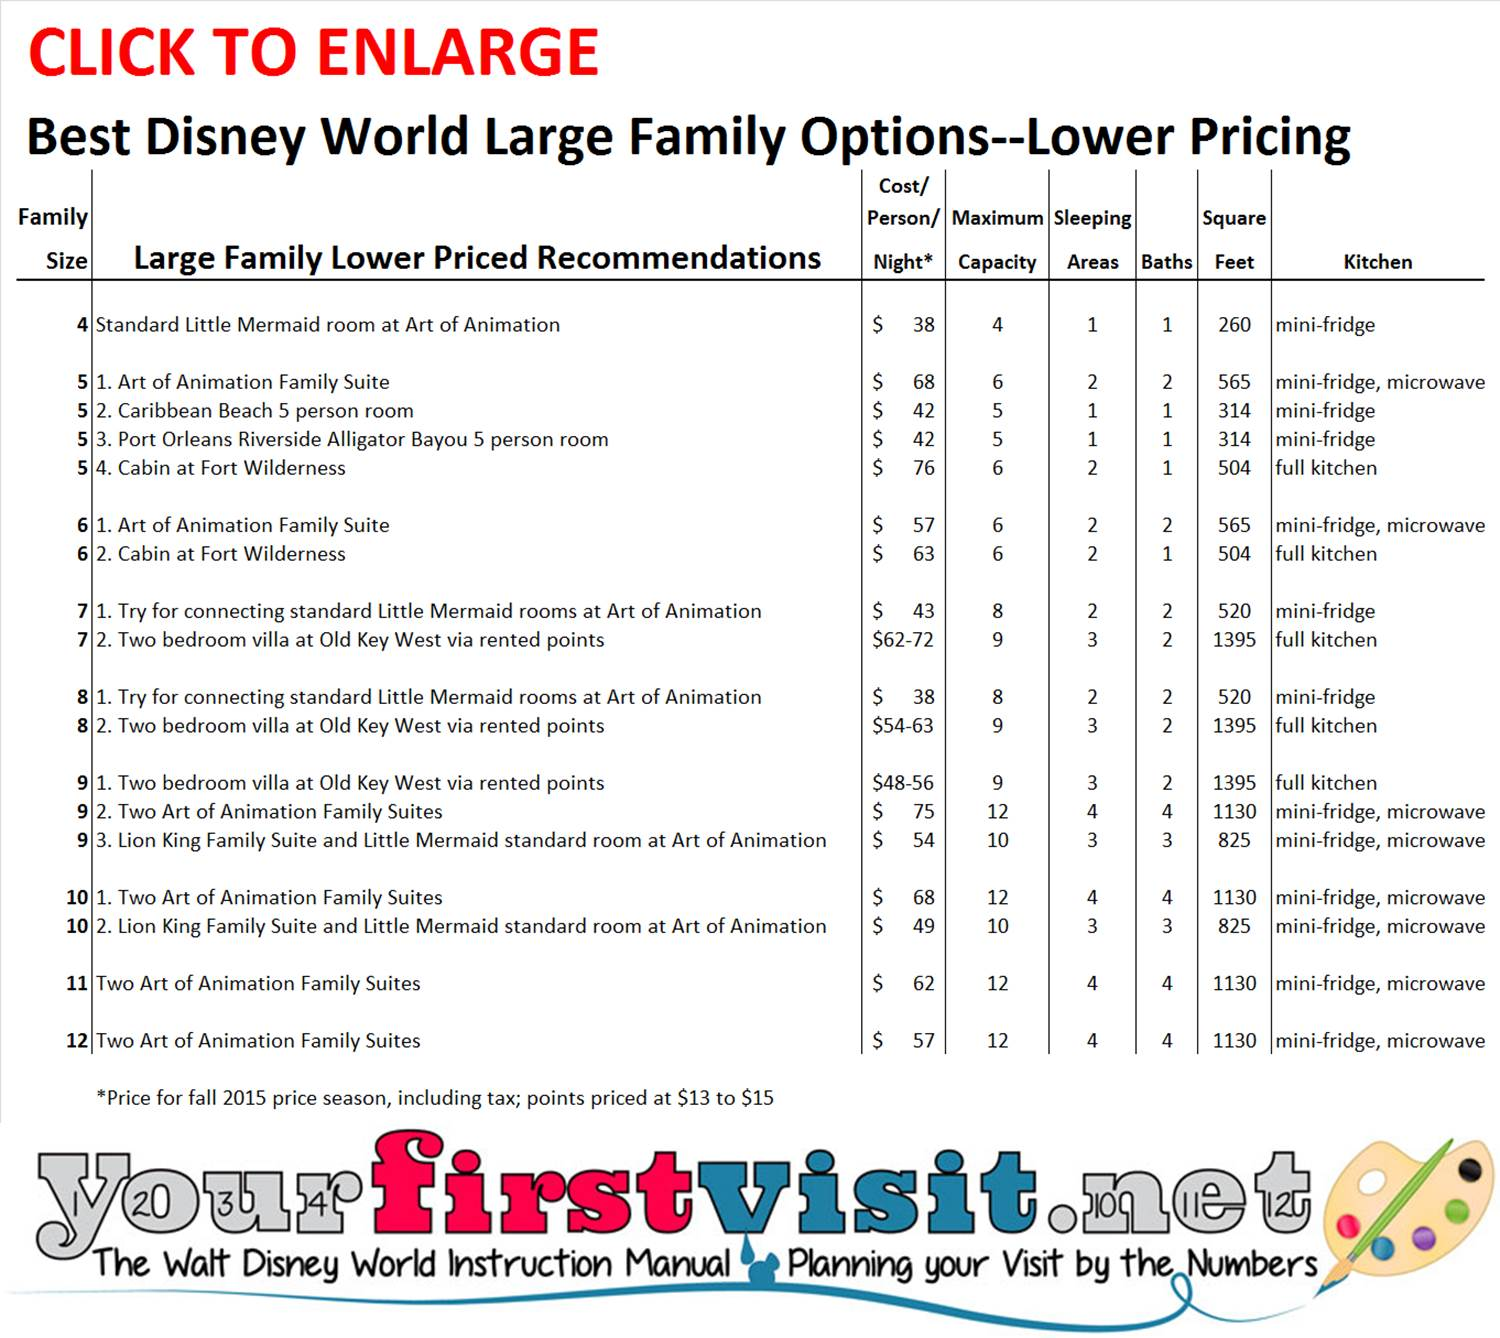 Disney World Lower Priced Large Family Recommendations from yourfirstvisit.net